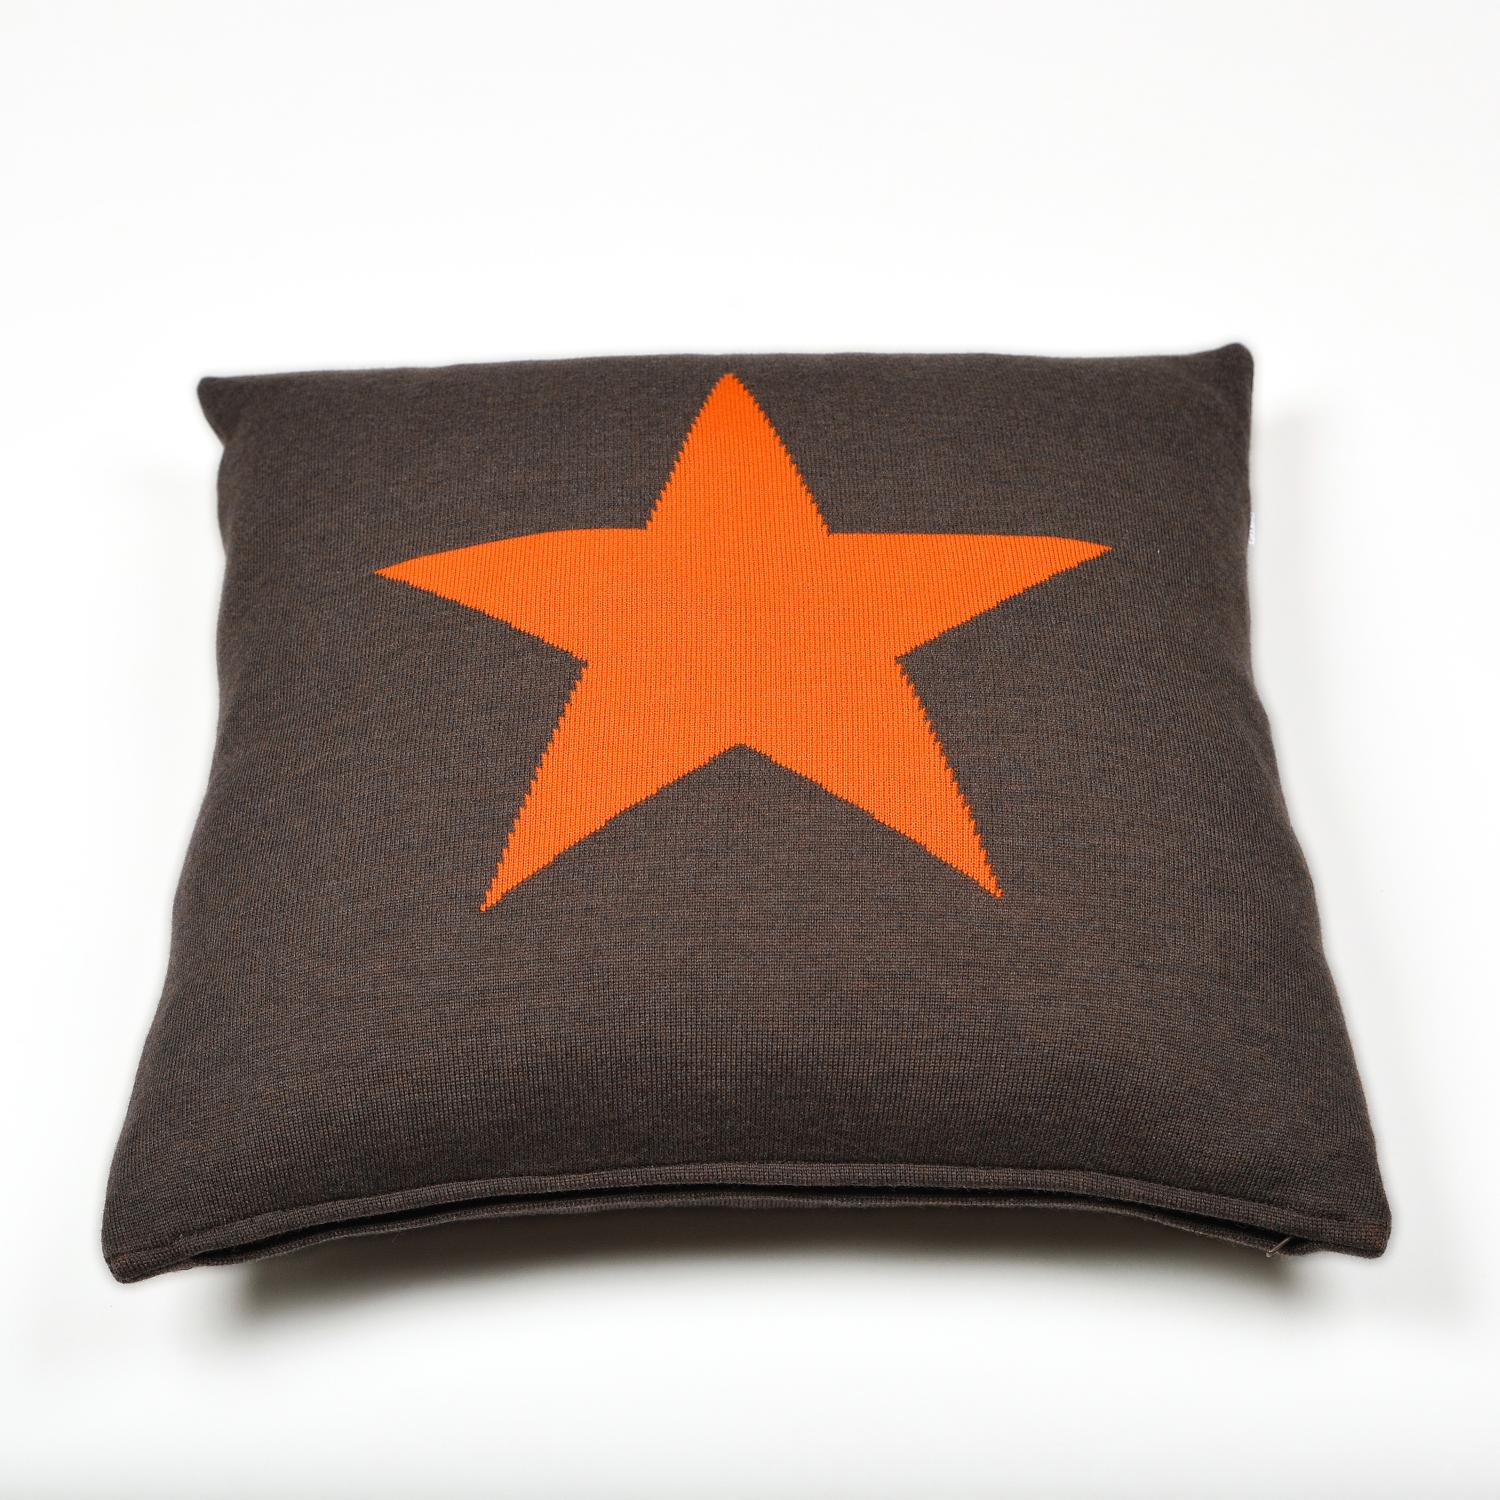 Kissenhülle 50x50cm Star, braun/orange